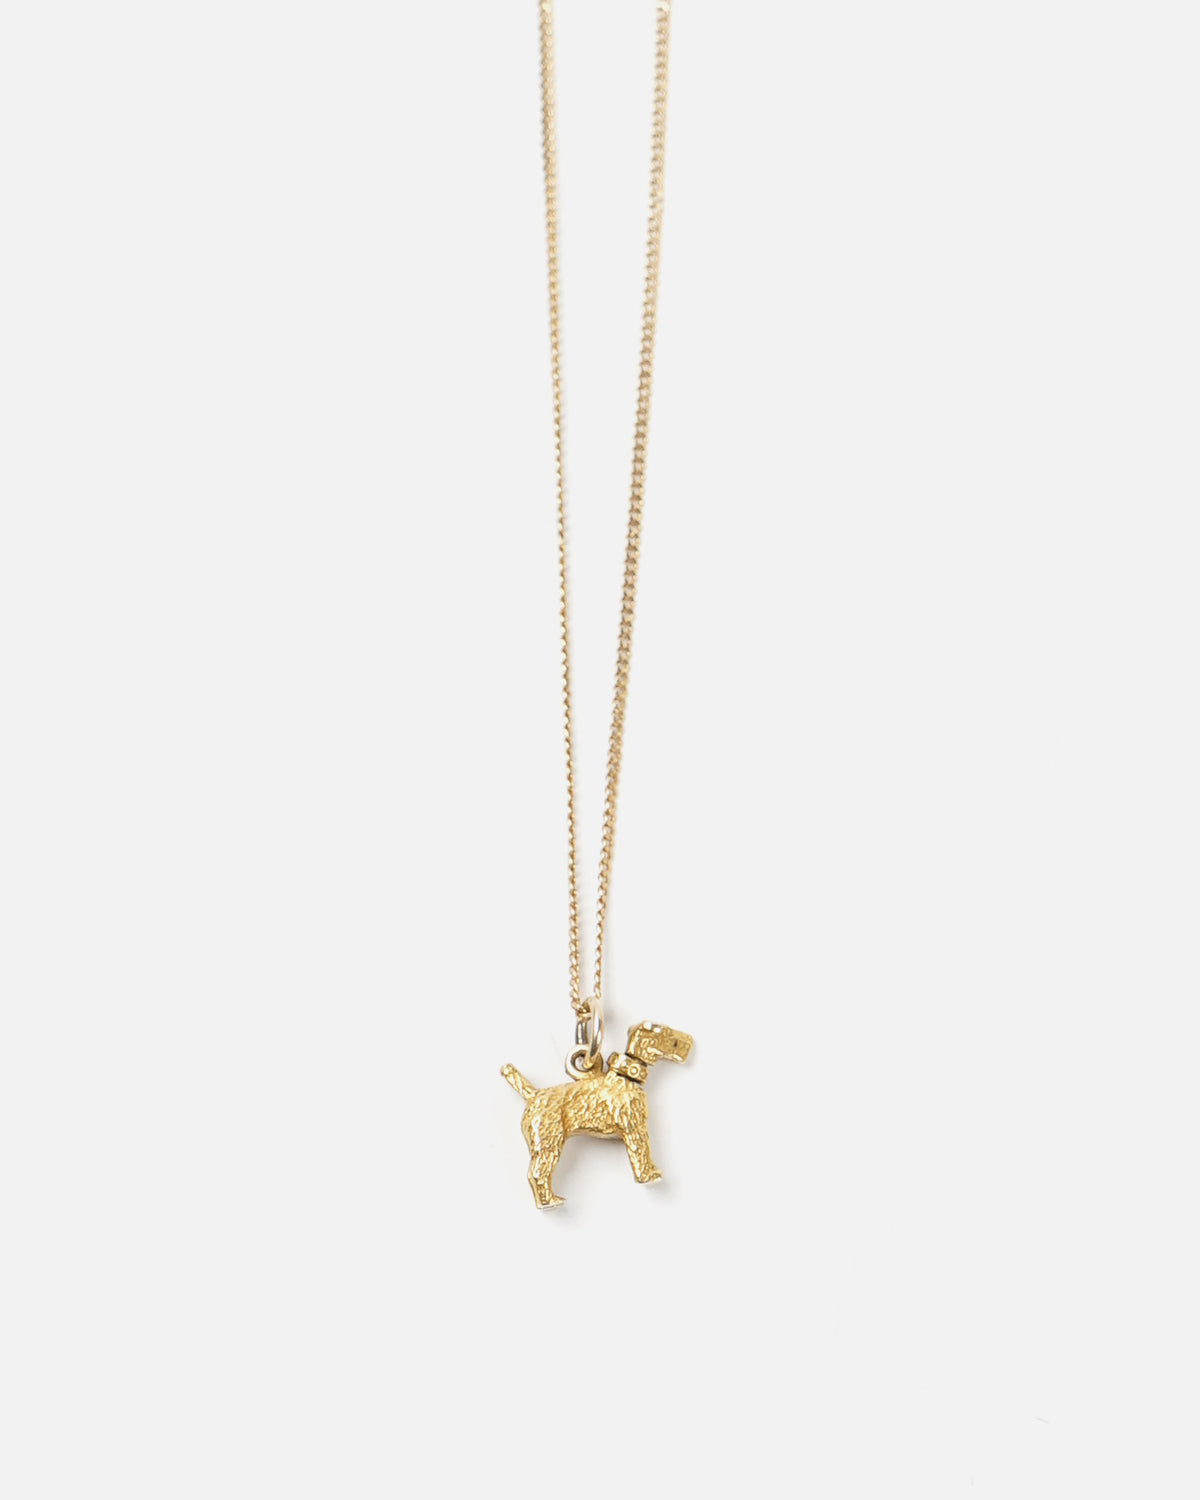 14k Gold Dog Charm Necklace